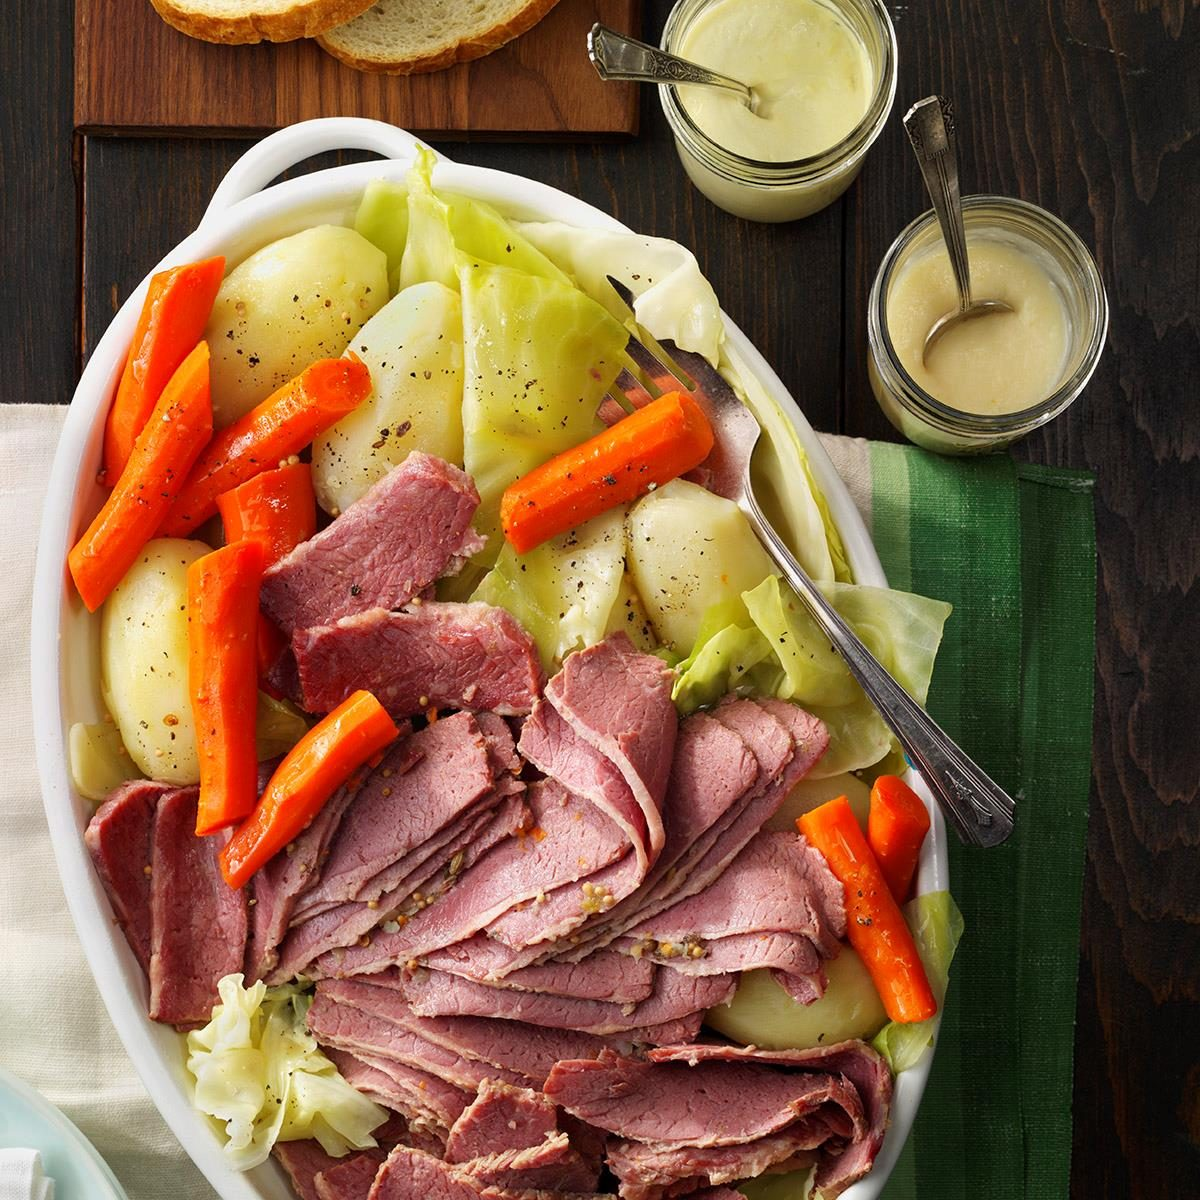 Favorite Corned Beef And Cabbage Exps Cwfm17 4153 A10 11 4b 2